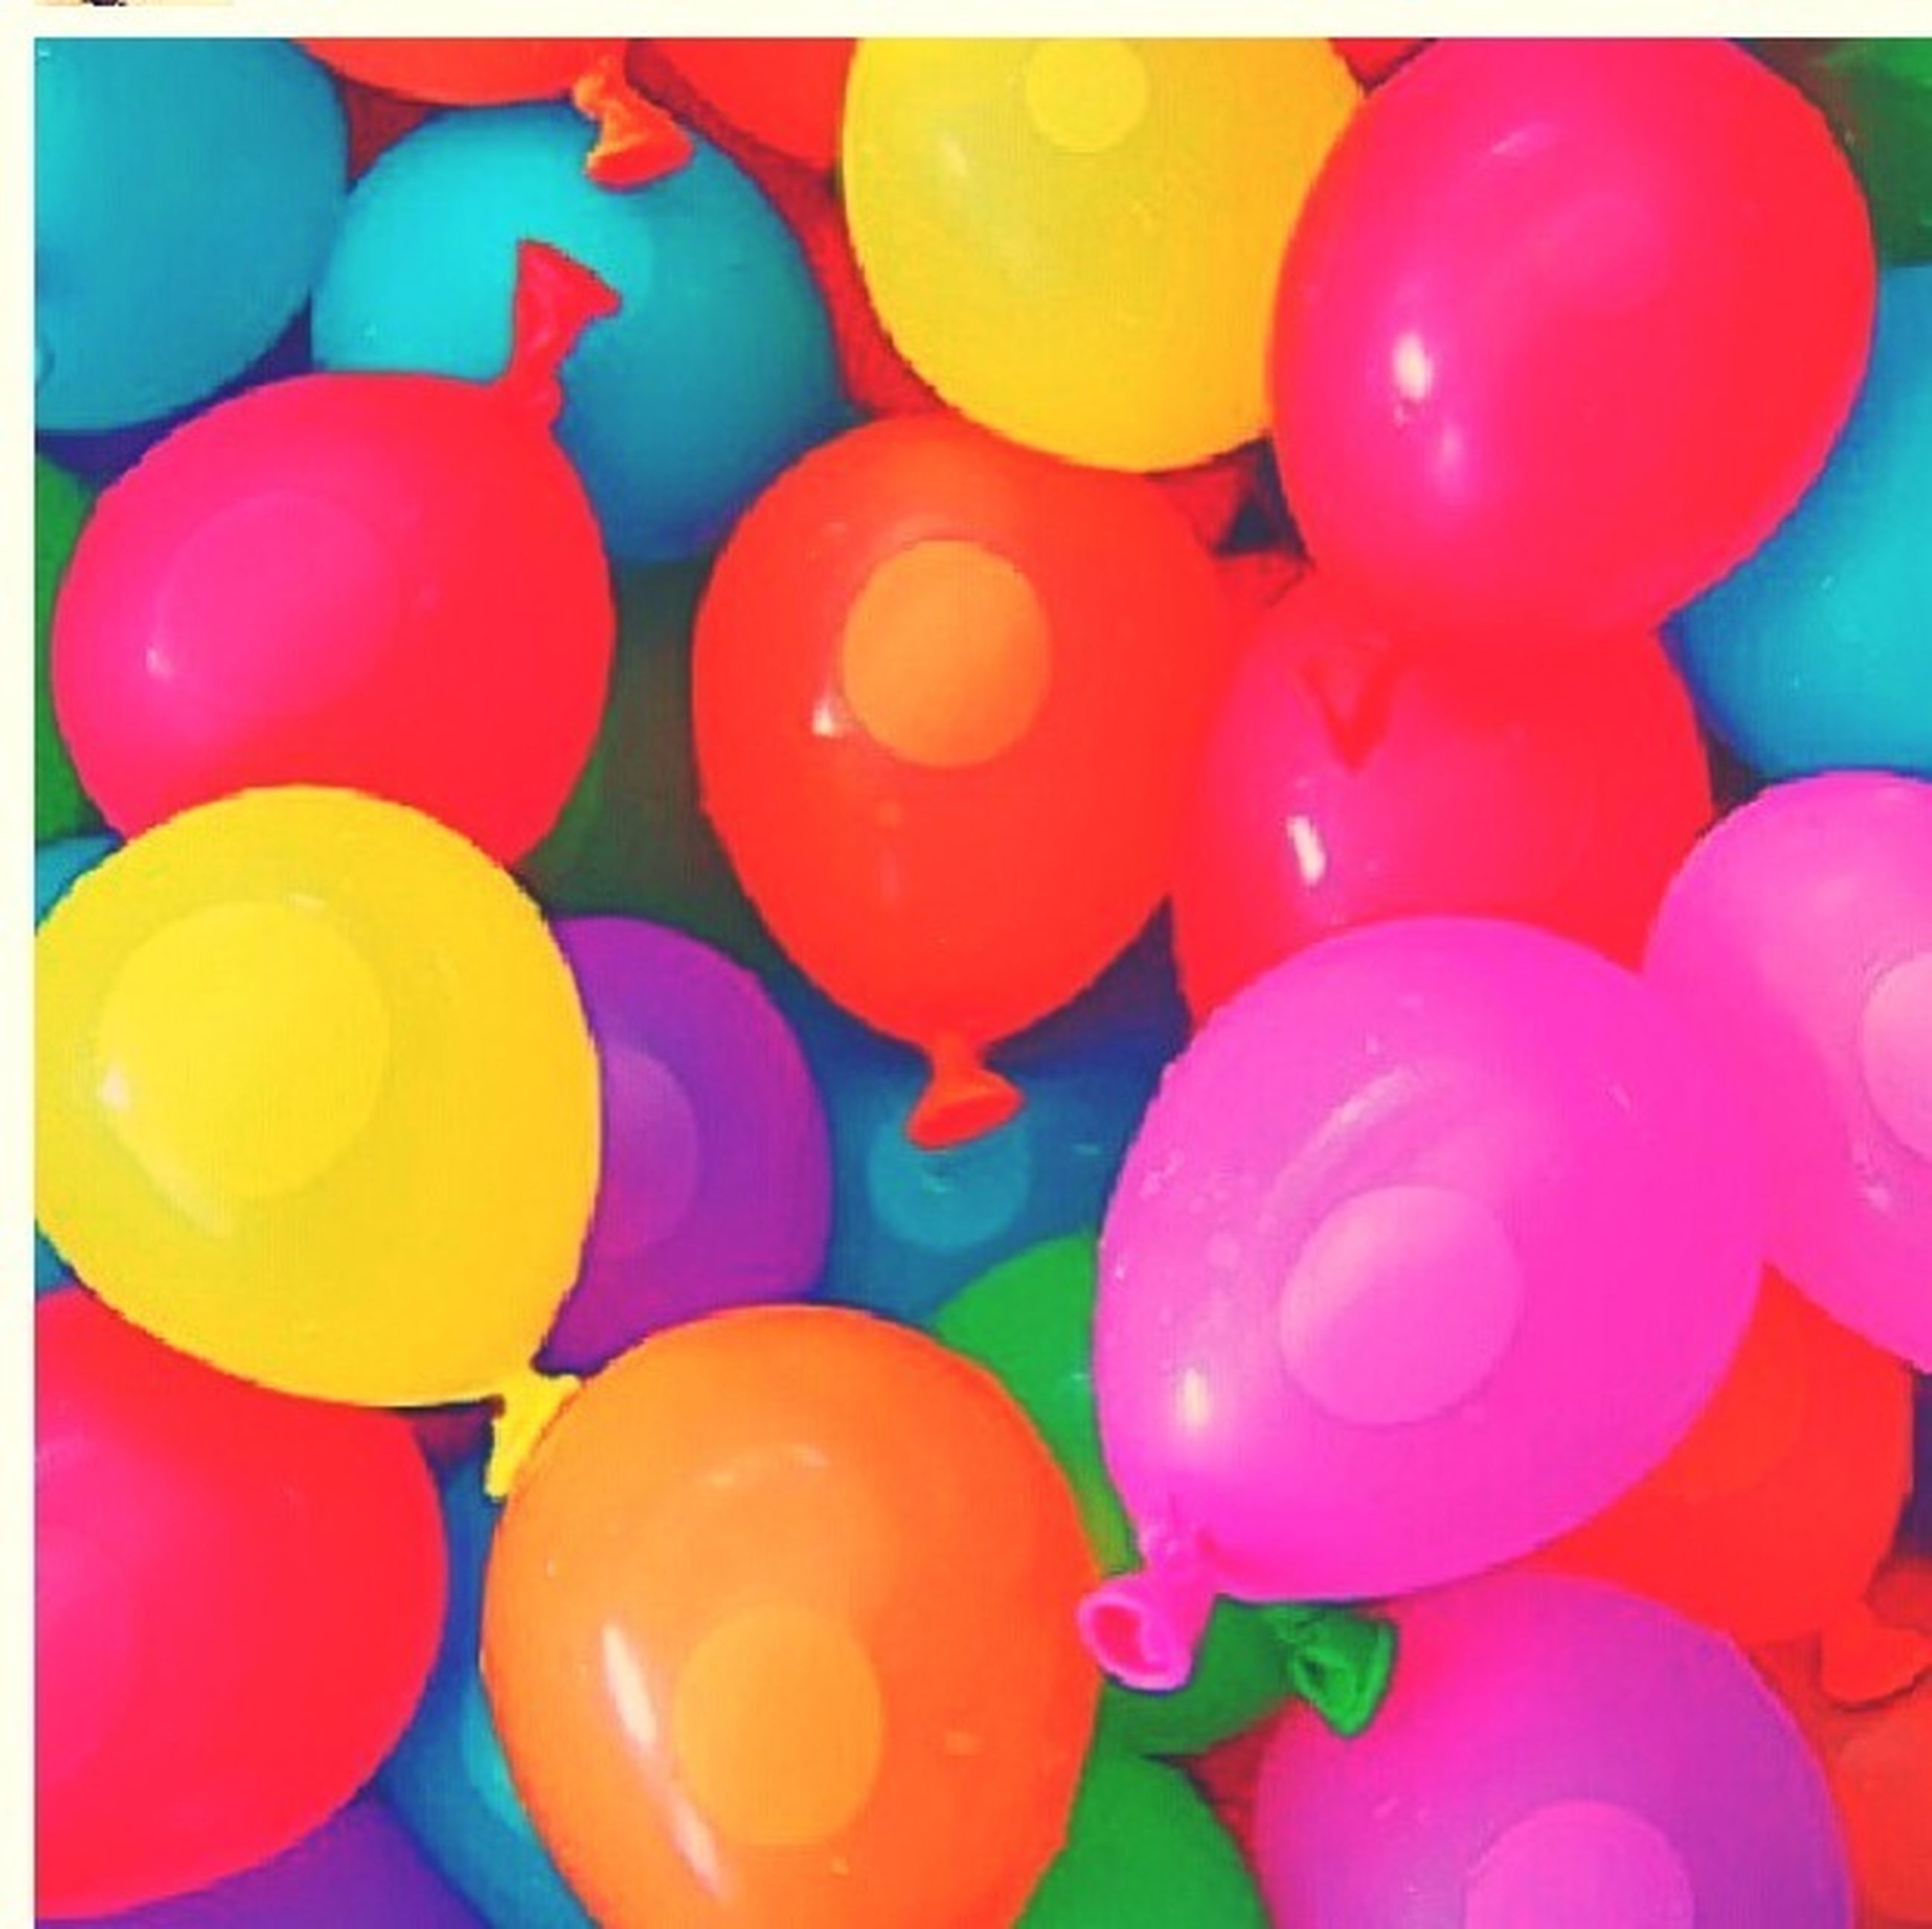 transfer print, auto post production filter, multi colored, full frame, colorful, backgrounds, large group of objects, indoors, abundance, variation, close-up, red, still life, no people, balloon, blue, vibrant color, high angle view, circle, pattern